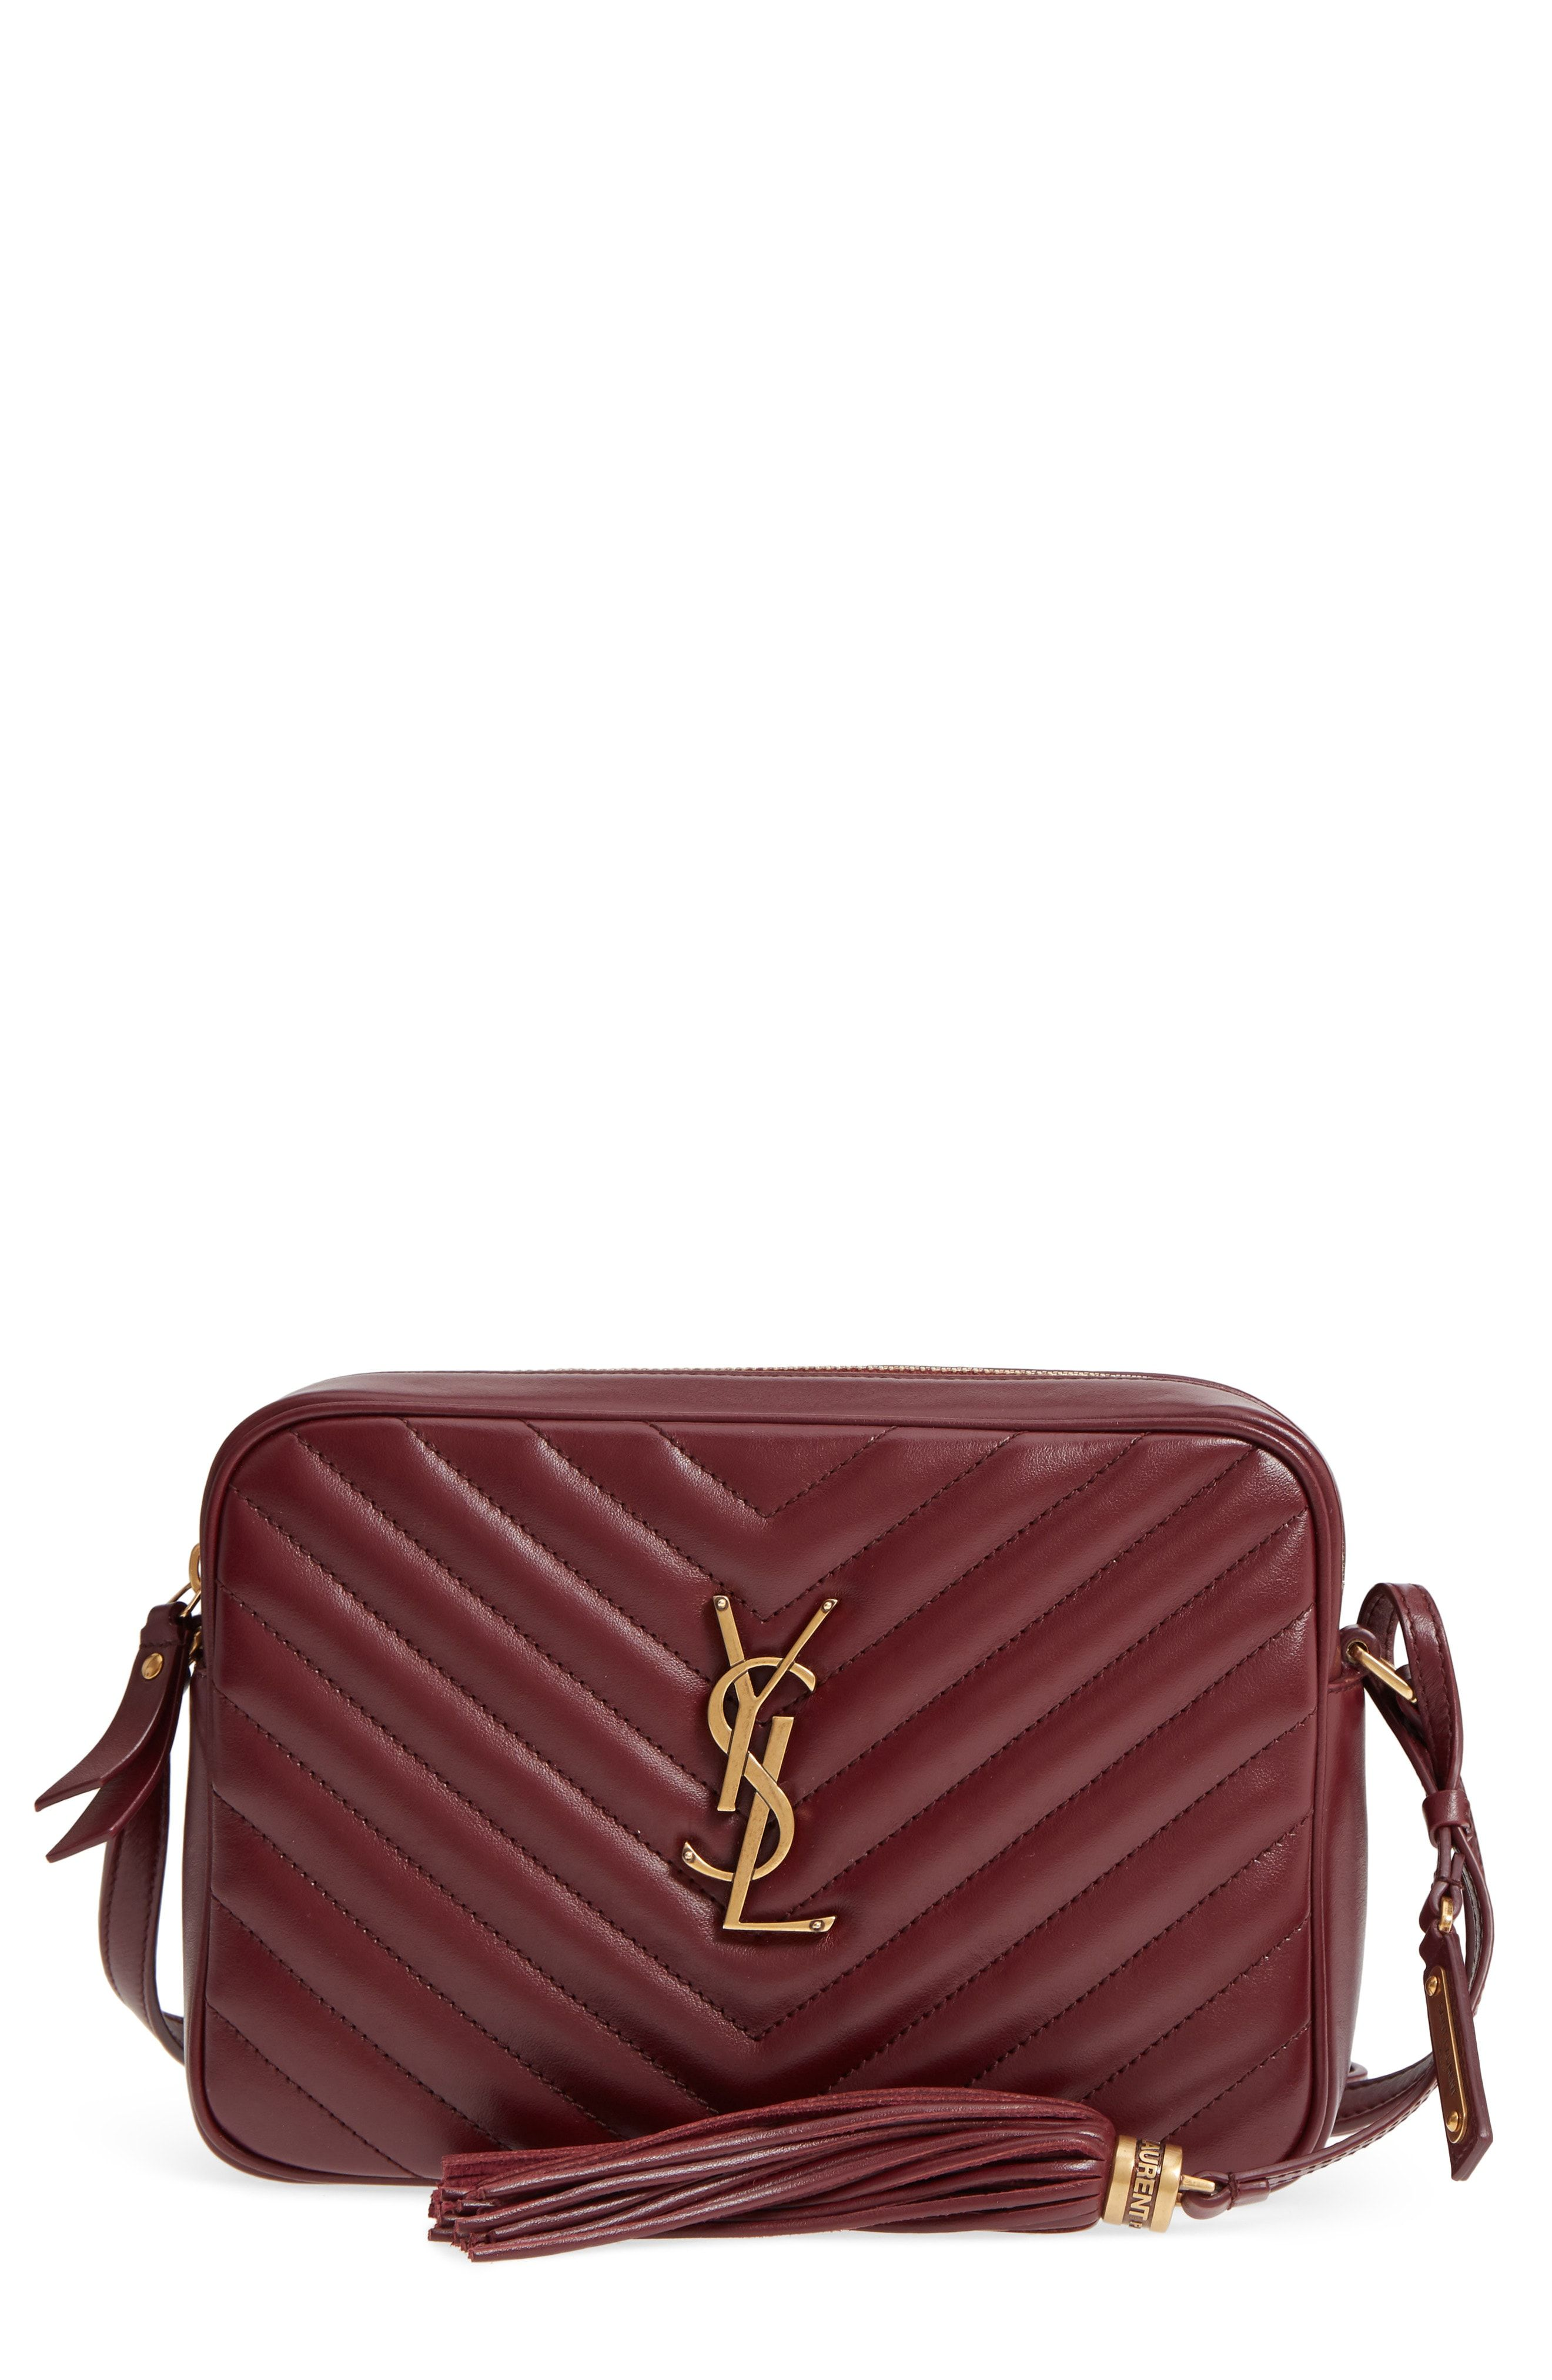 0e6598999e6 Gorgeous Lou Lou camera bag from YSL ad, ladies handbags, shoulder bag, ysl,  handbags, designer bags. Find this Pin and more on Yves Saint Laurent ...